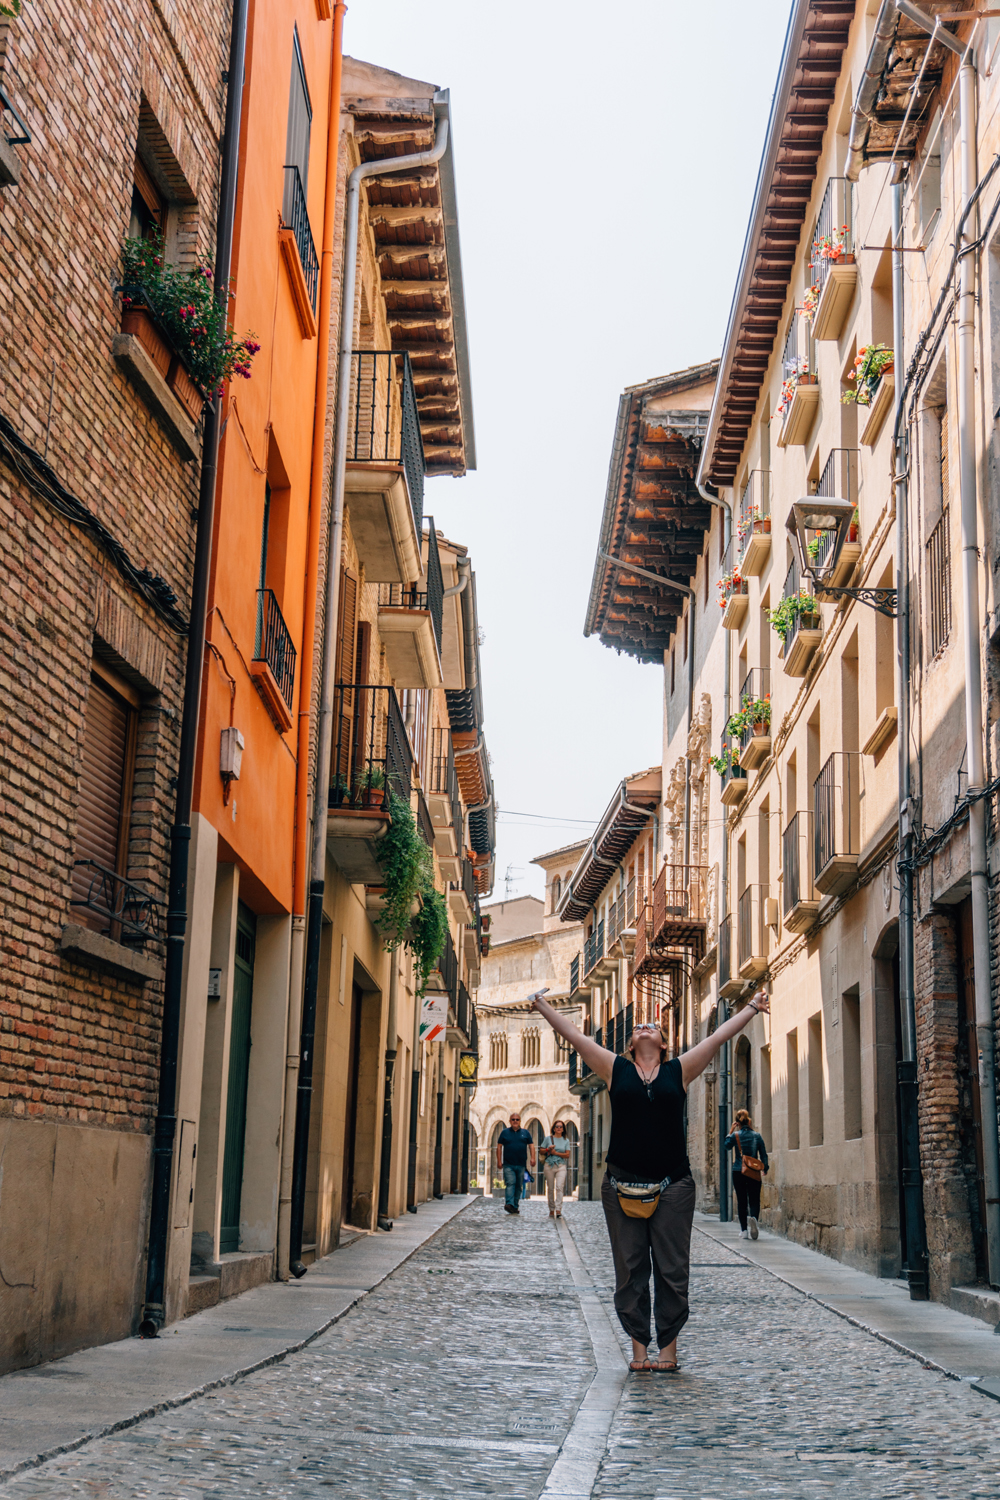 Our first rest day in Estella